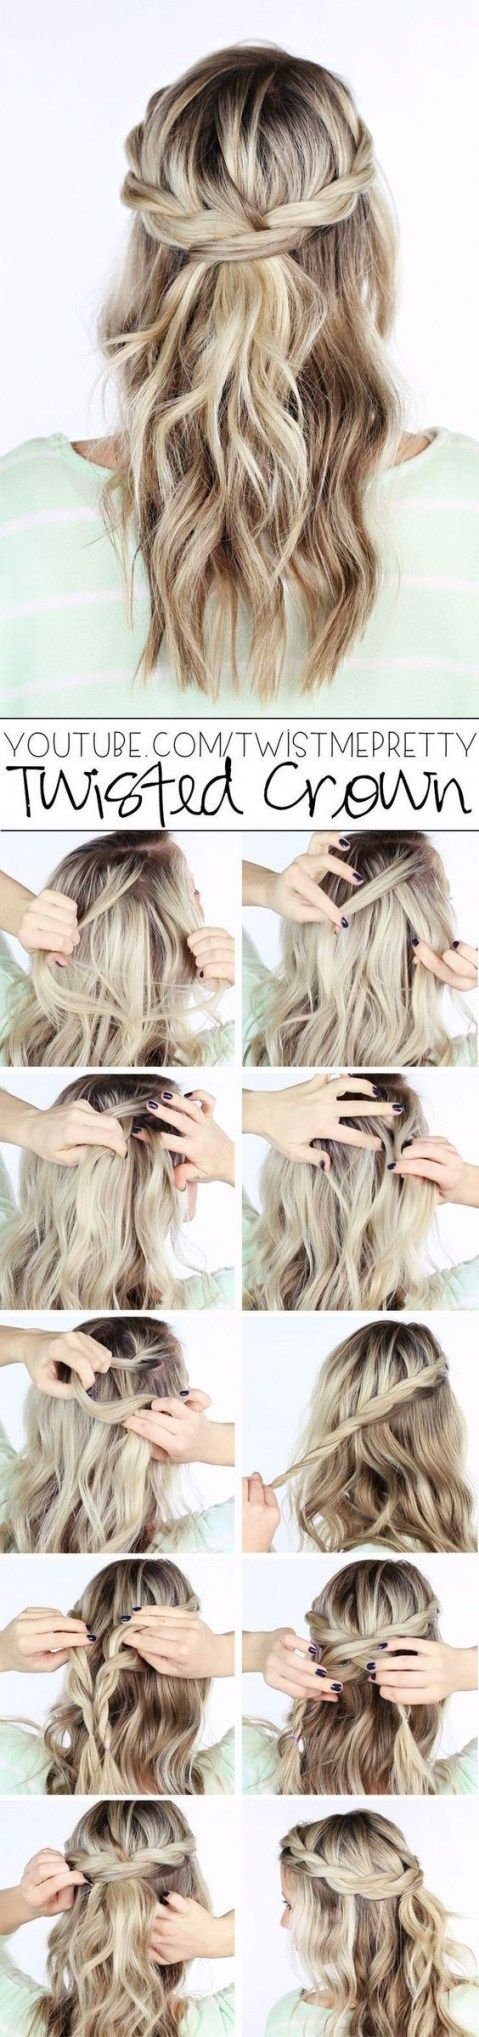 wedding guest hairstyles for long hair pinterest   beauty